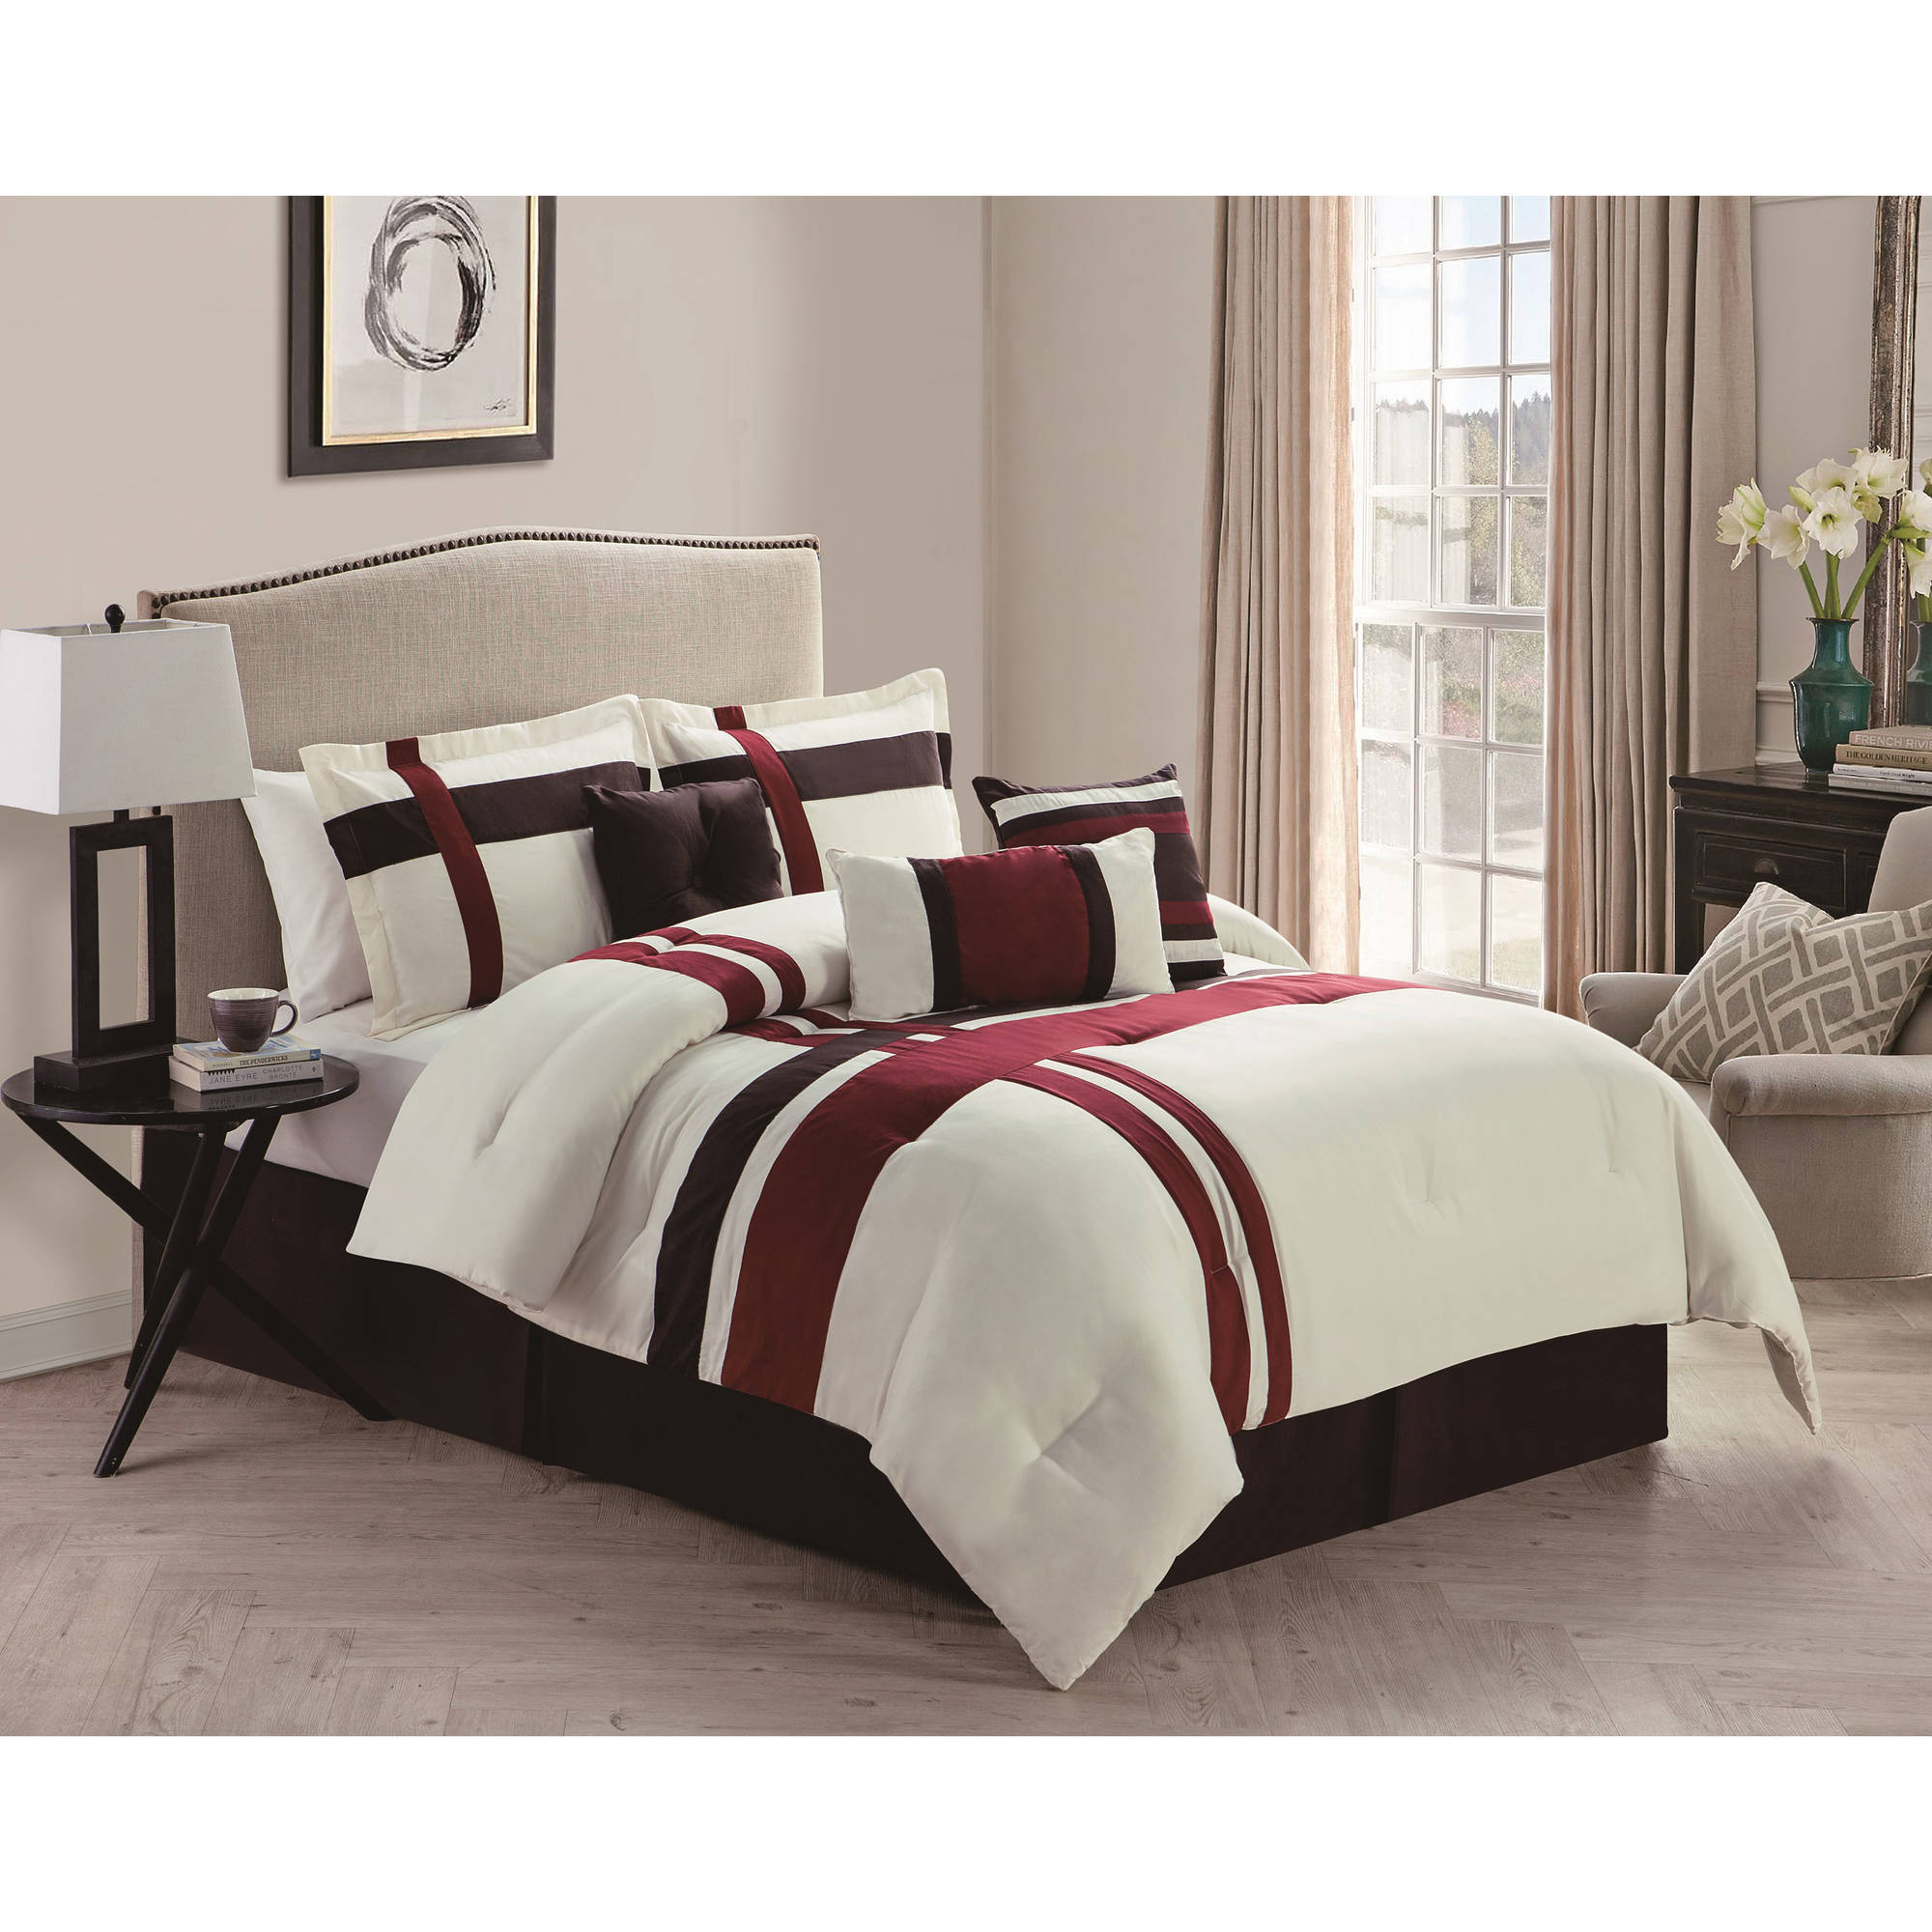 VCNY Home Berkley 7-Piece Multi-Colored Stripe Bedding Comforter Set with Decorative Pillows, Multiple Colors Available